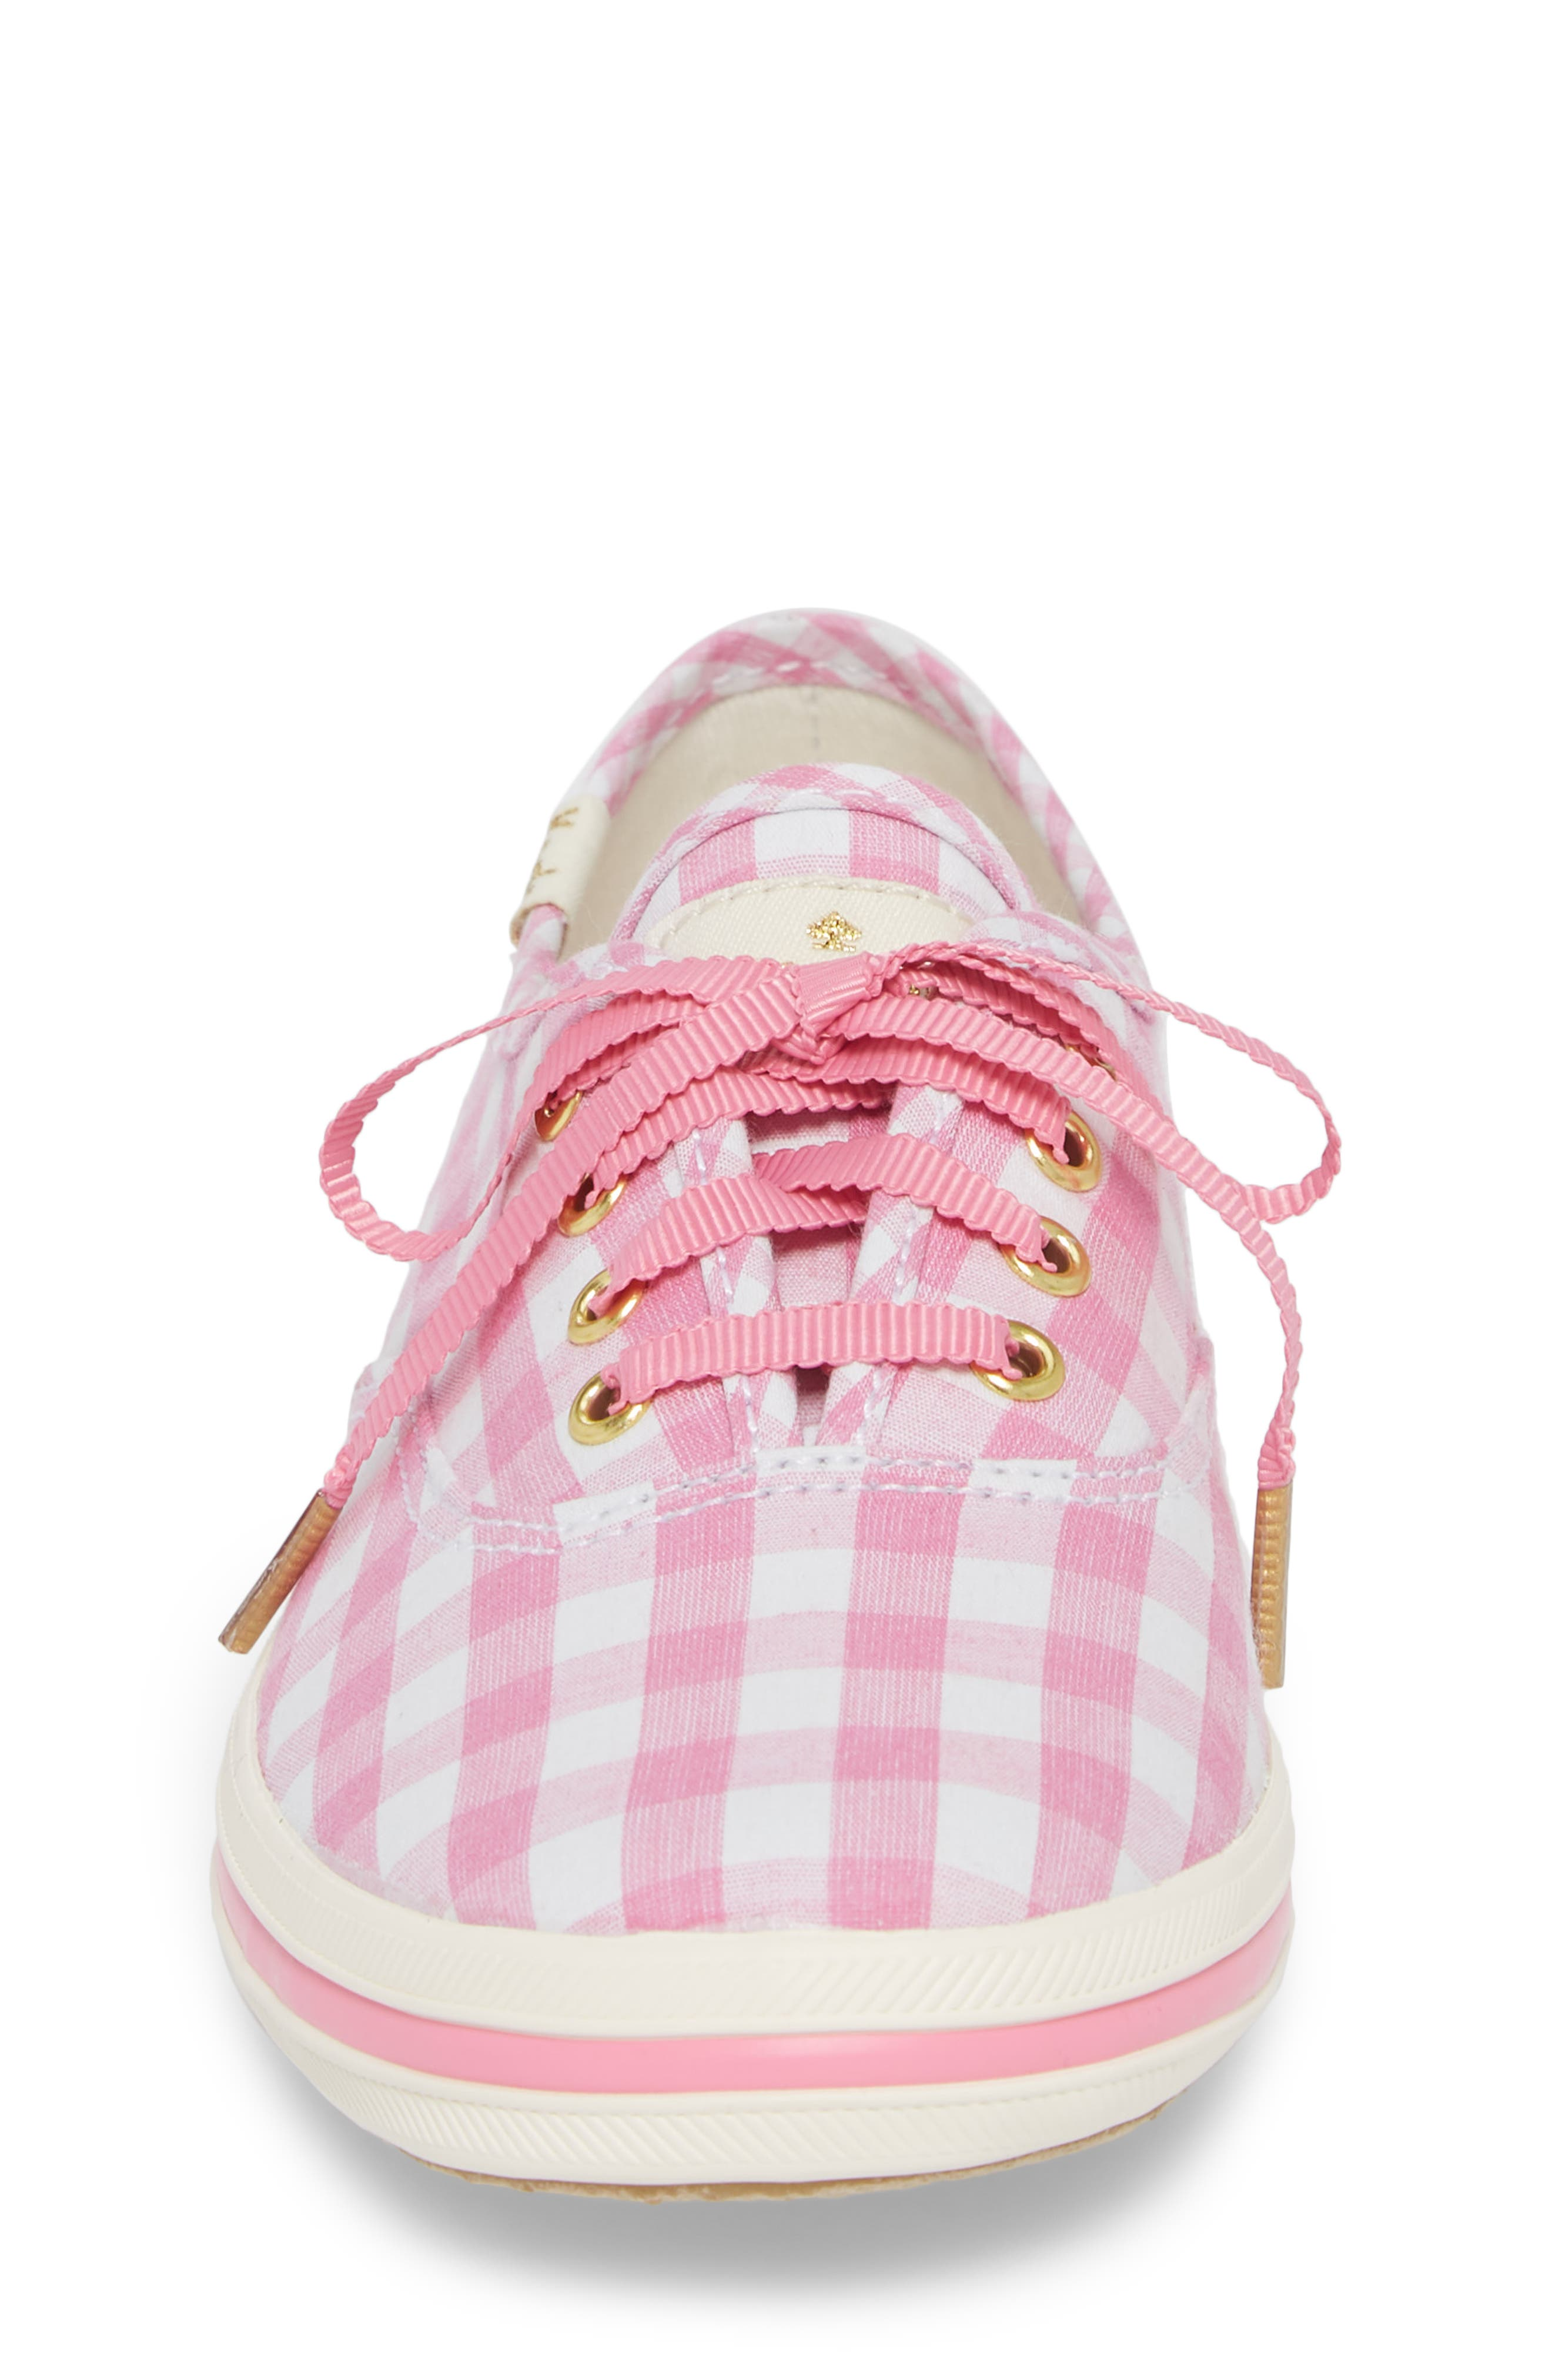 x kate spade new york champion gingham lace-up shoe,                             Alternate thumbnail 4, color,                             Pink Gingham